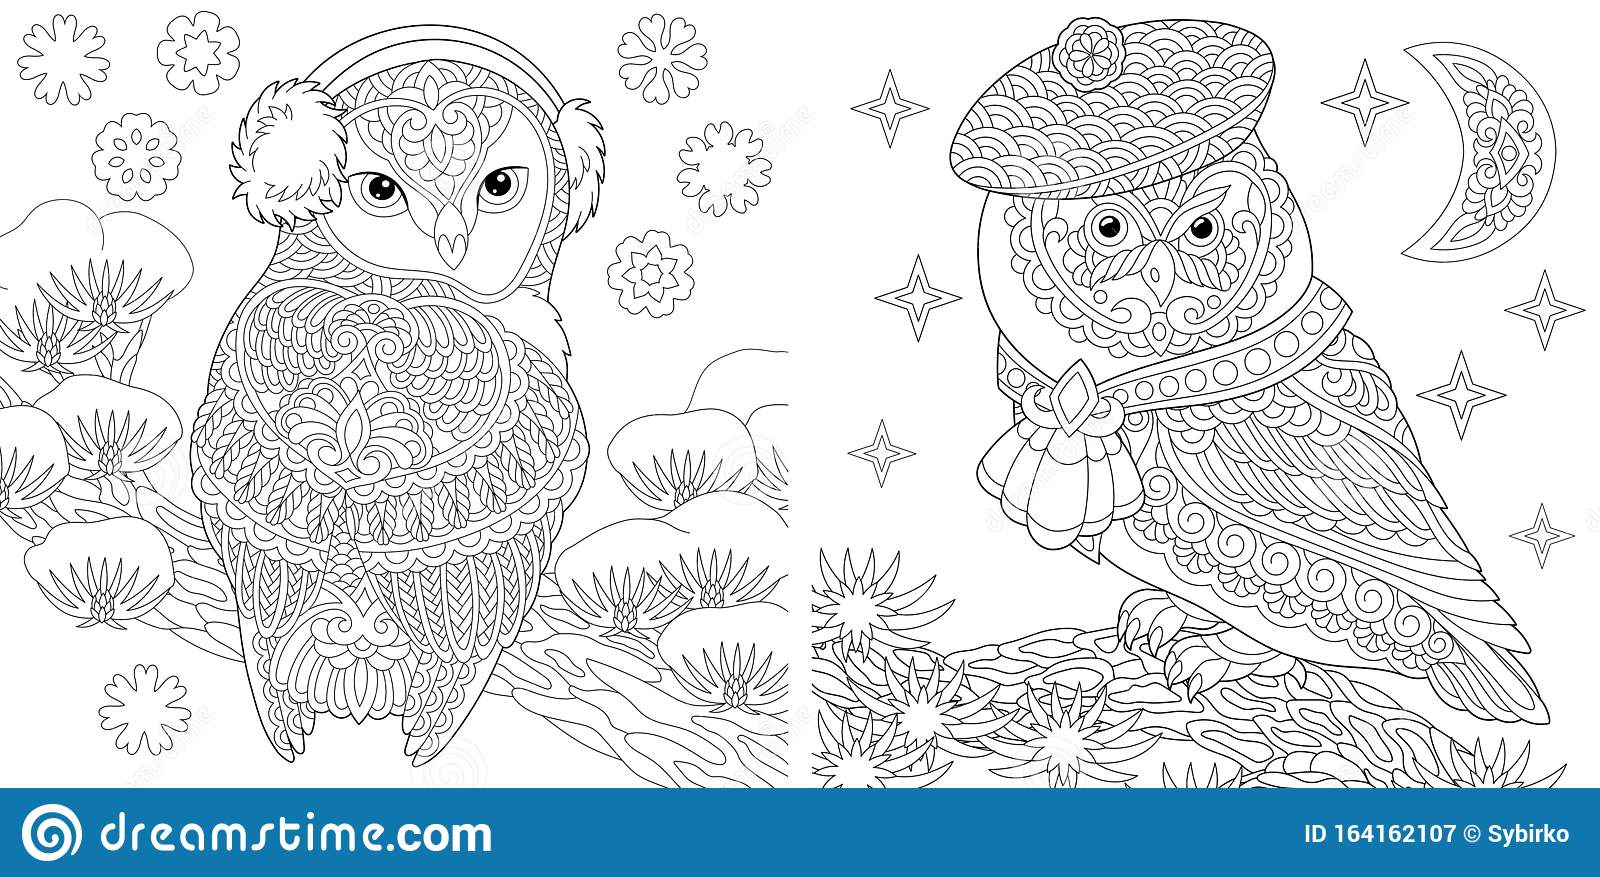 Winter Coloring Pages – coloring.rocks! | 877x1600